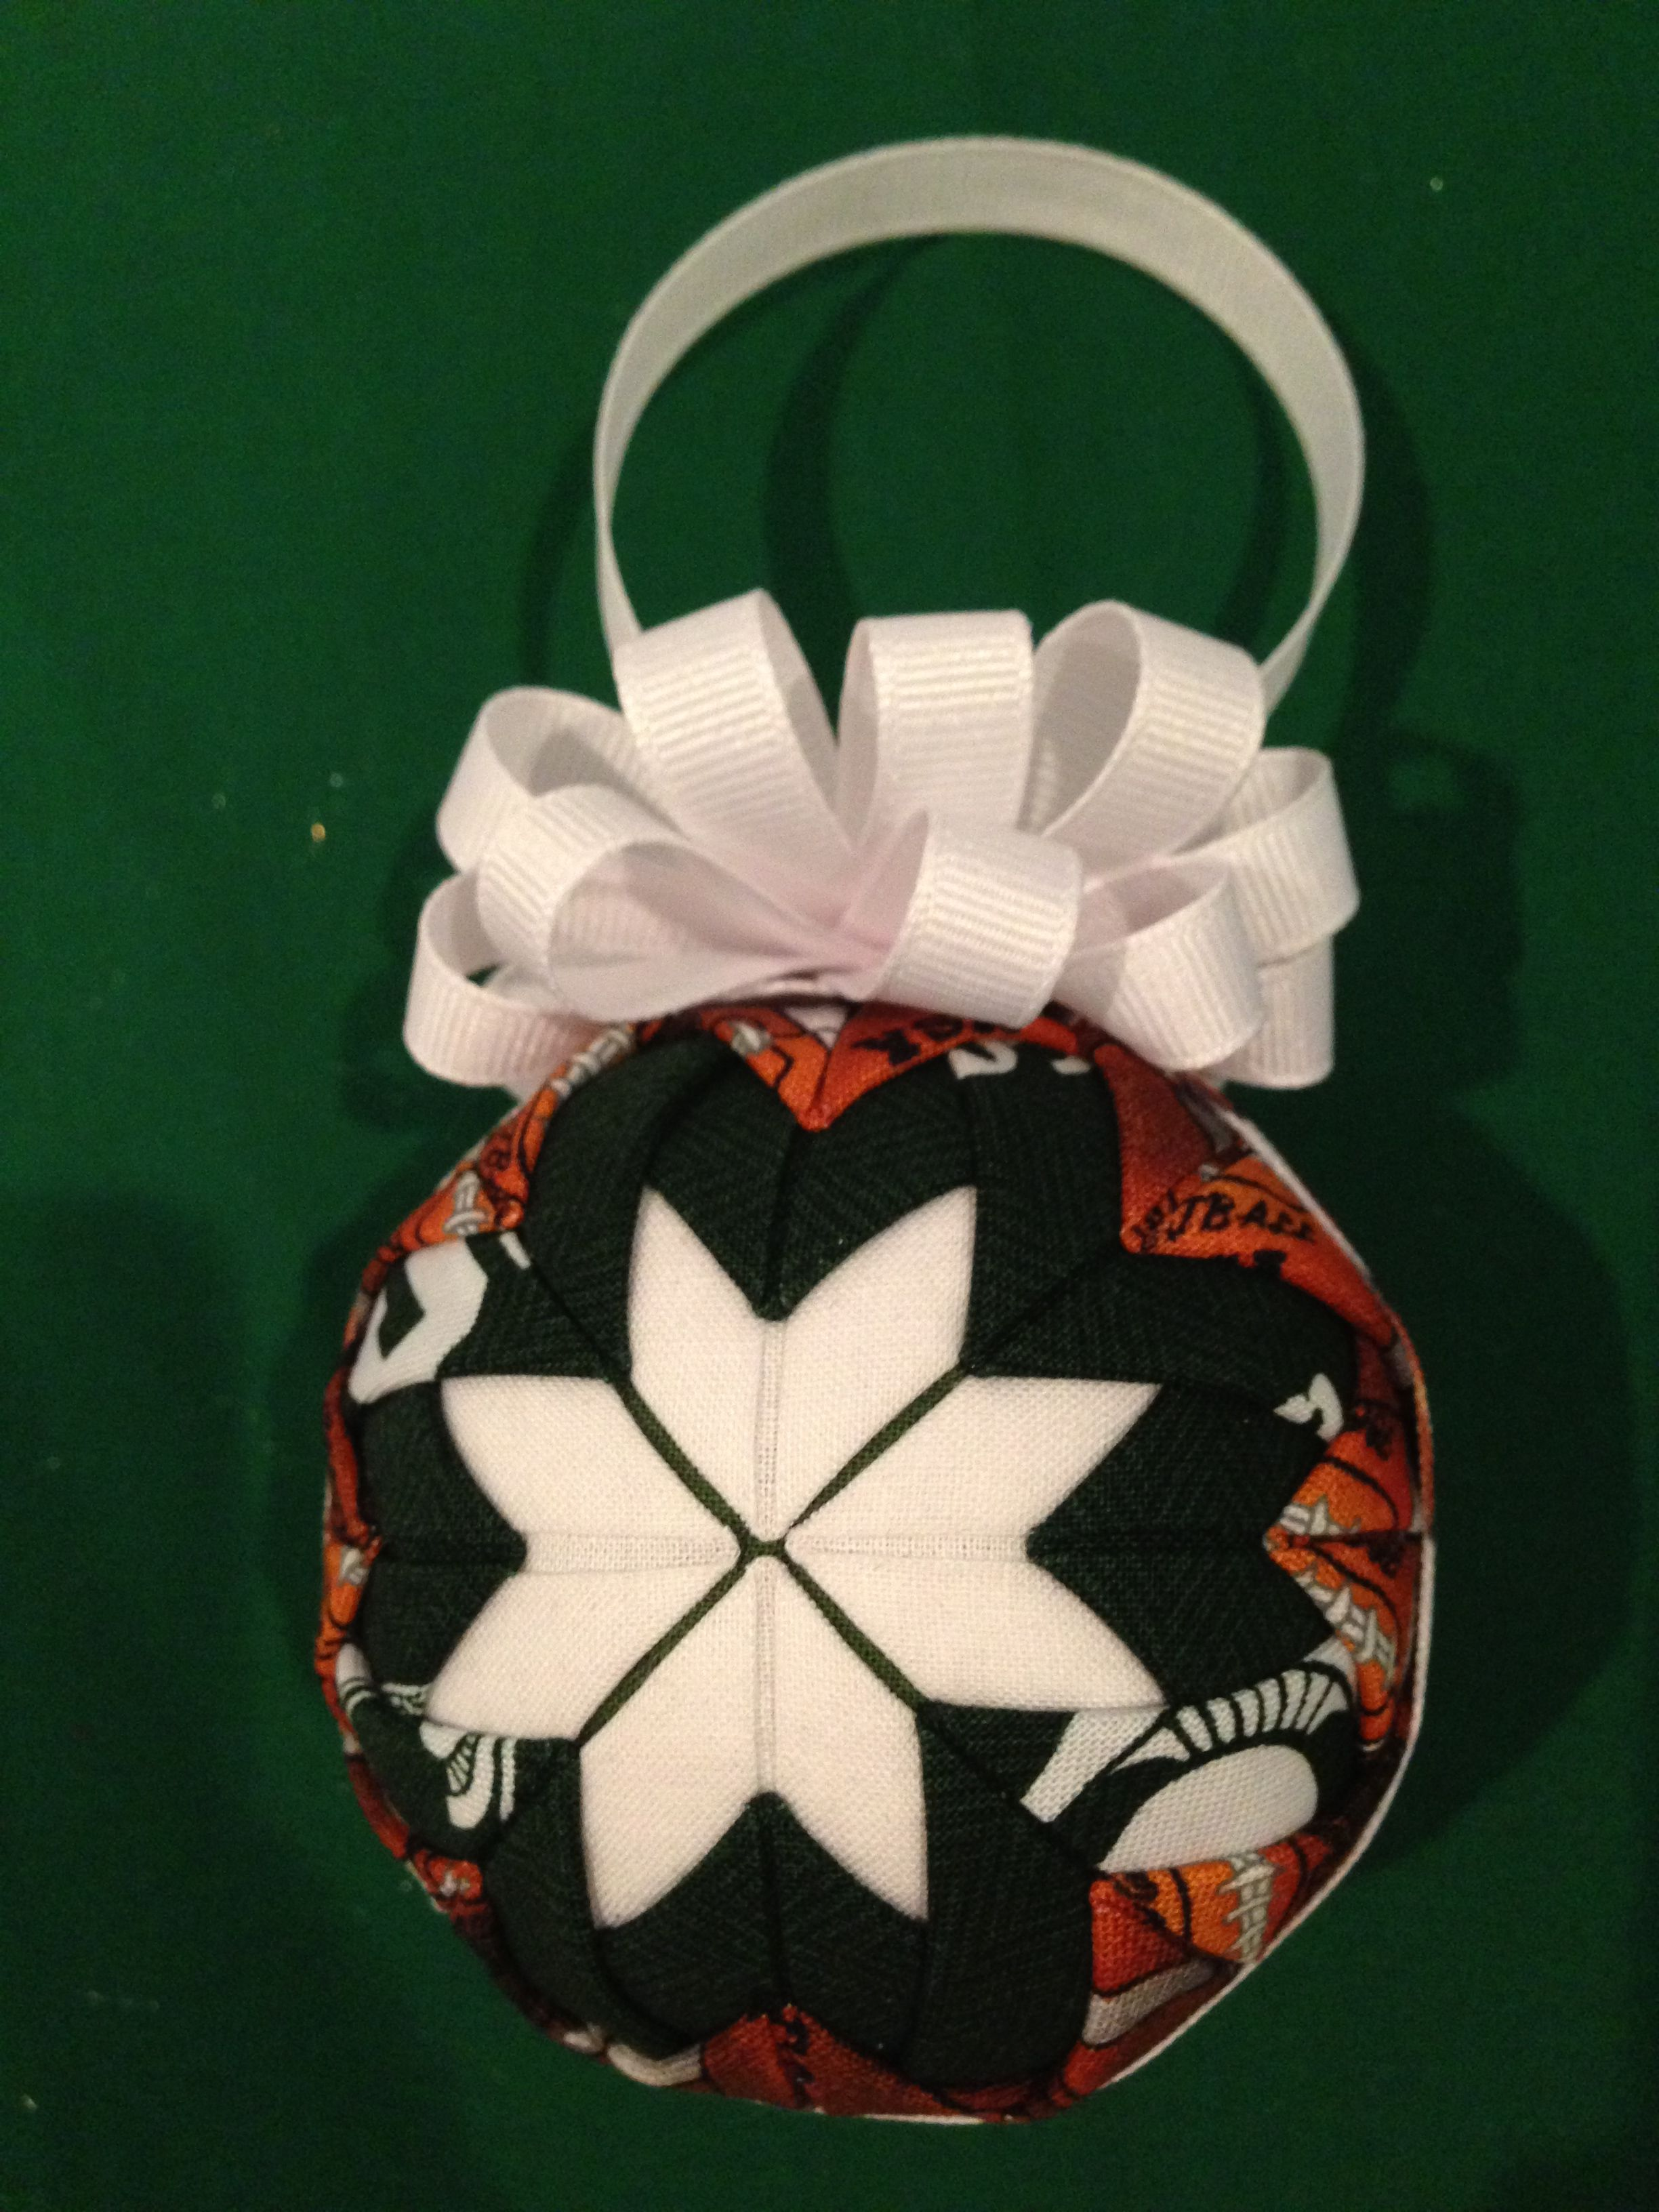 University of michigan christmas ornaments - Michigan State University Msu Football Quilted Christmas Ornament Holiday Fabric Craft